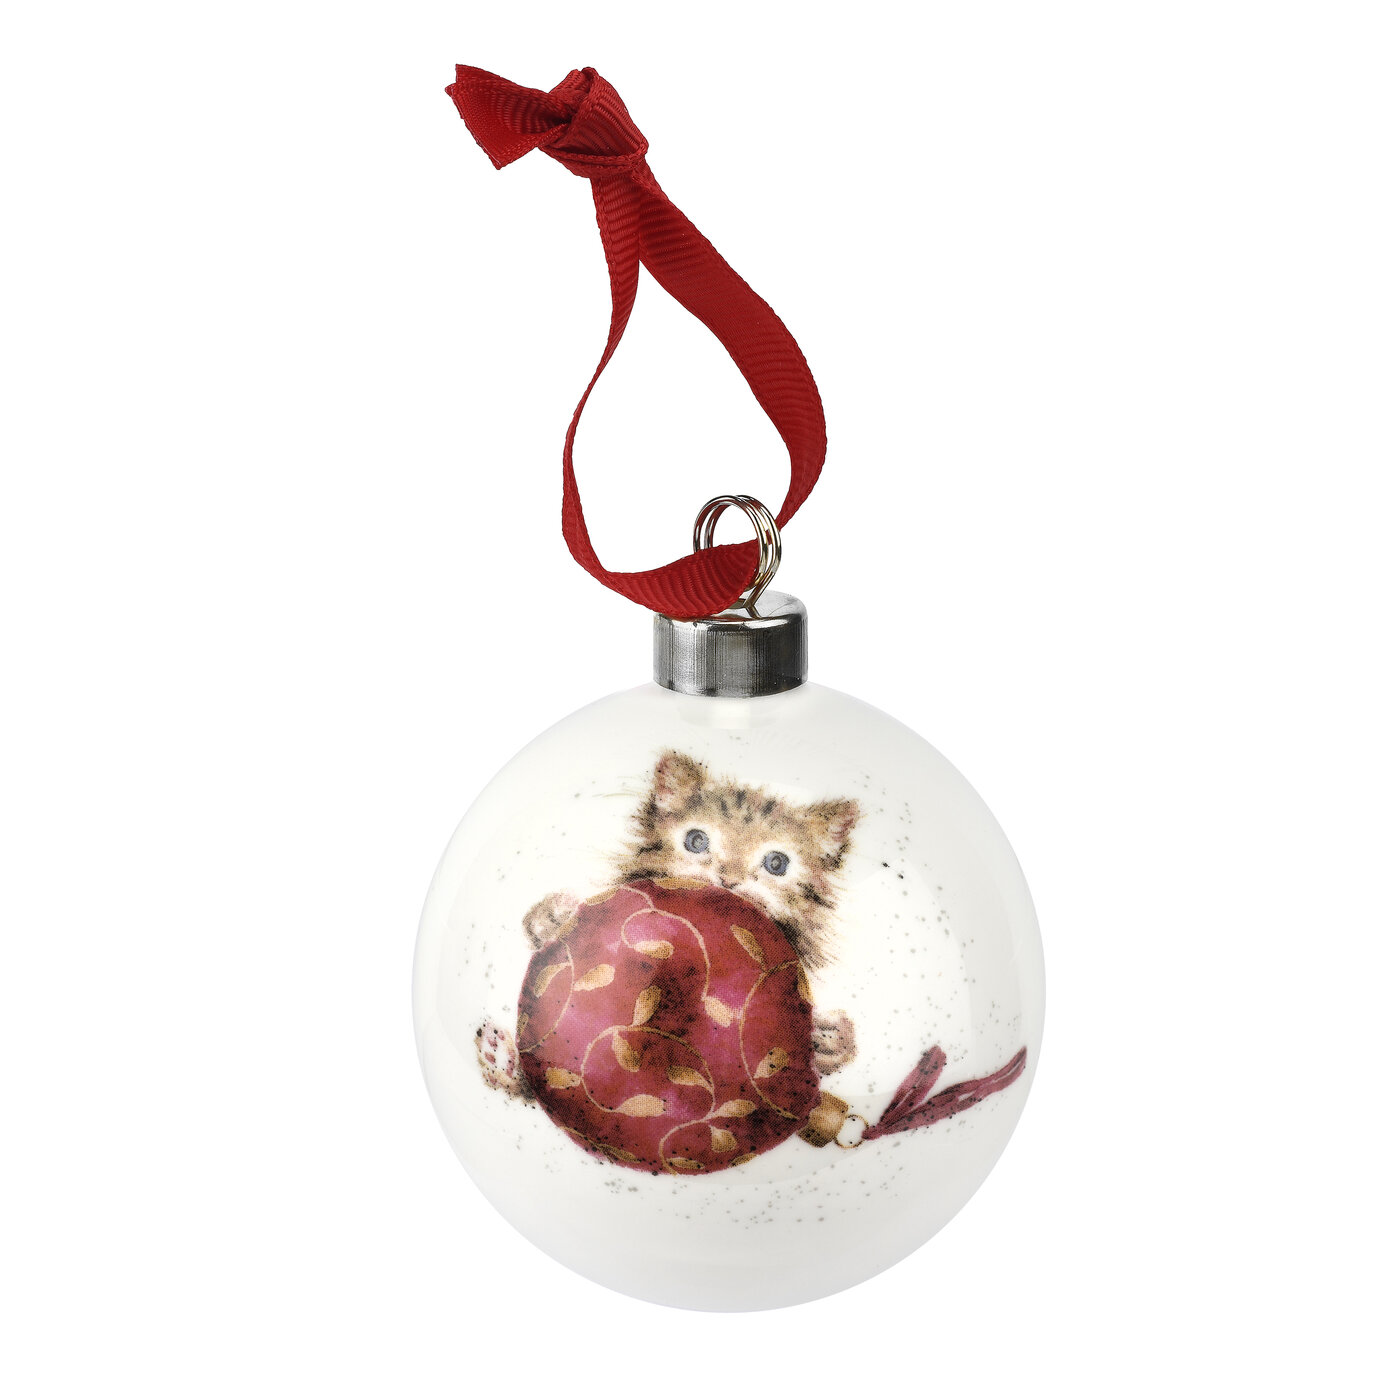 Royal Worcester Wrendale Designs Bauble (Purrfect Christmas) image number 0